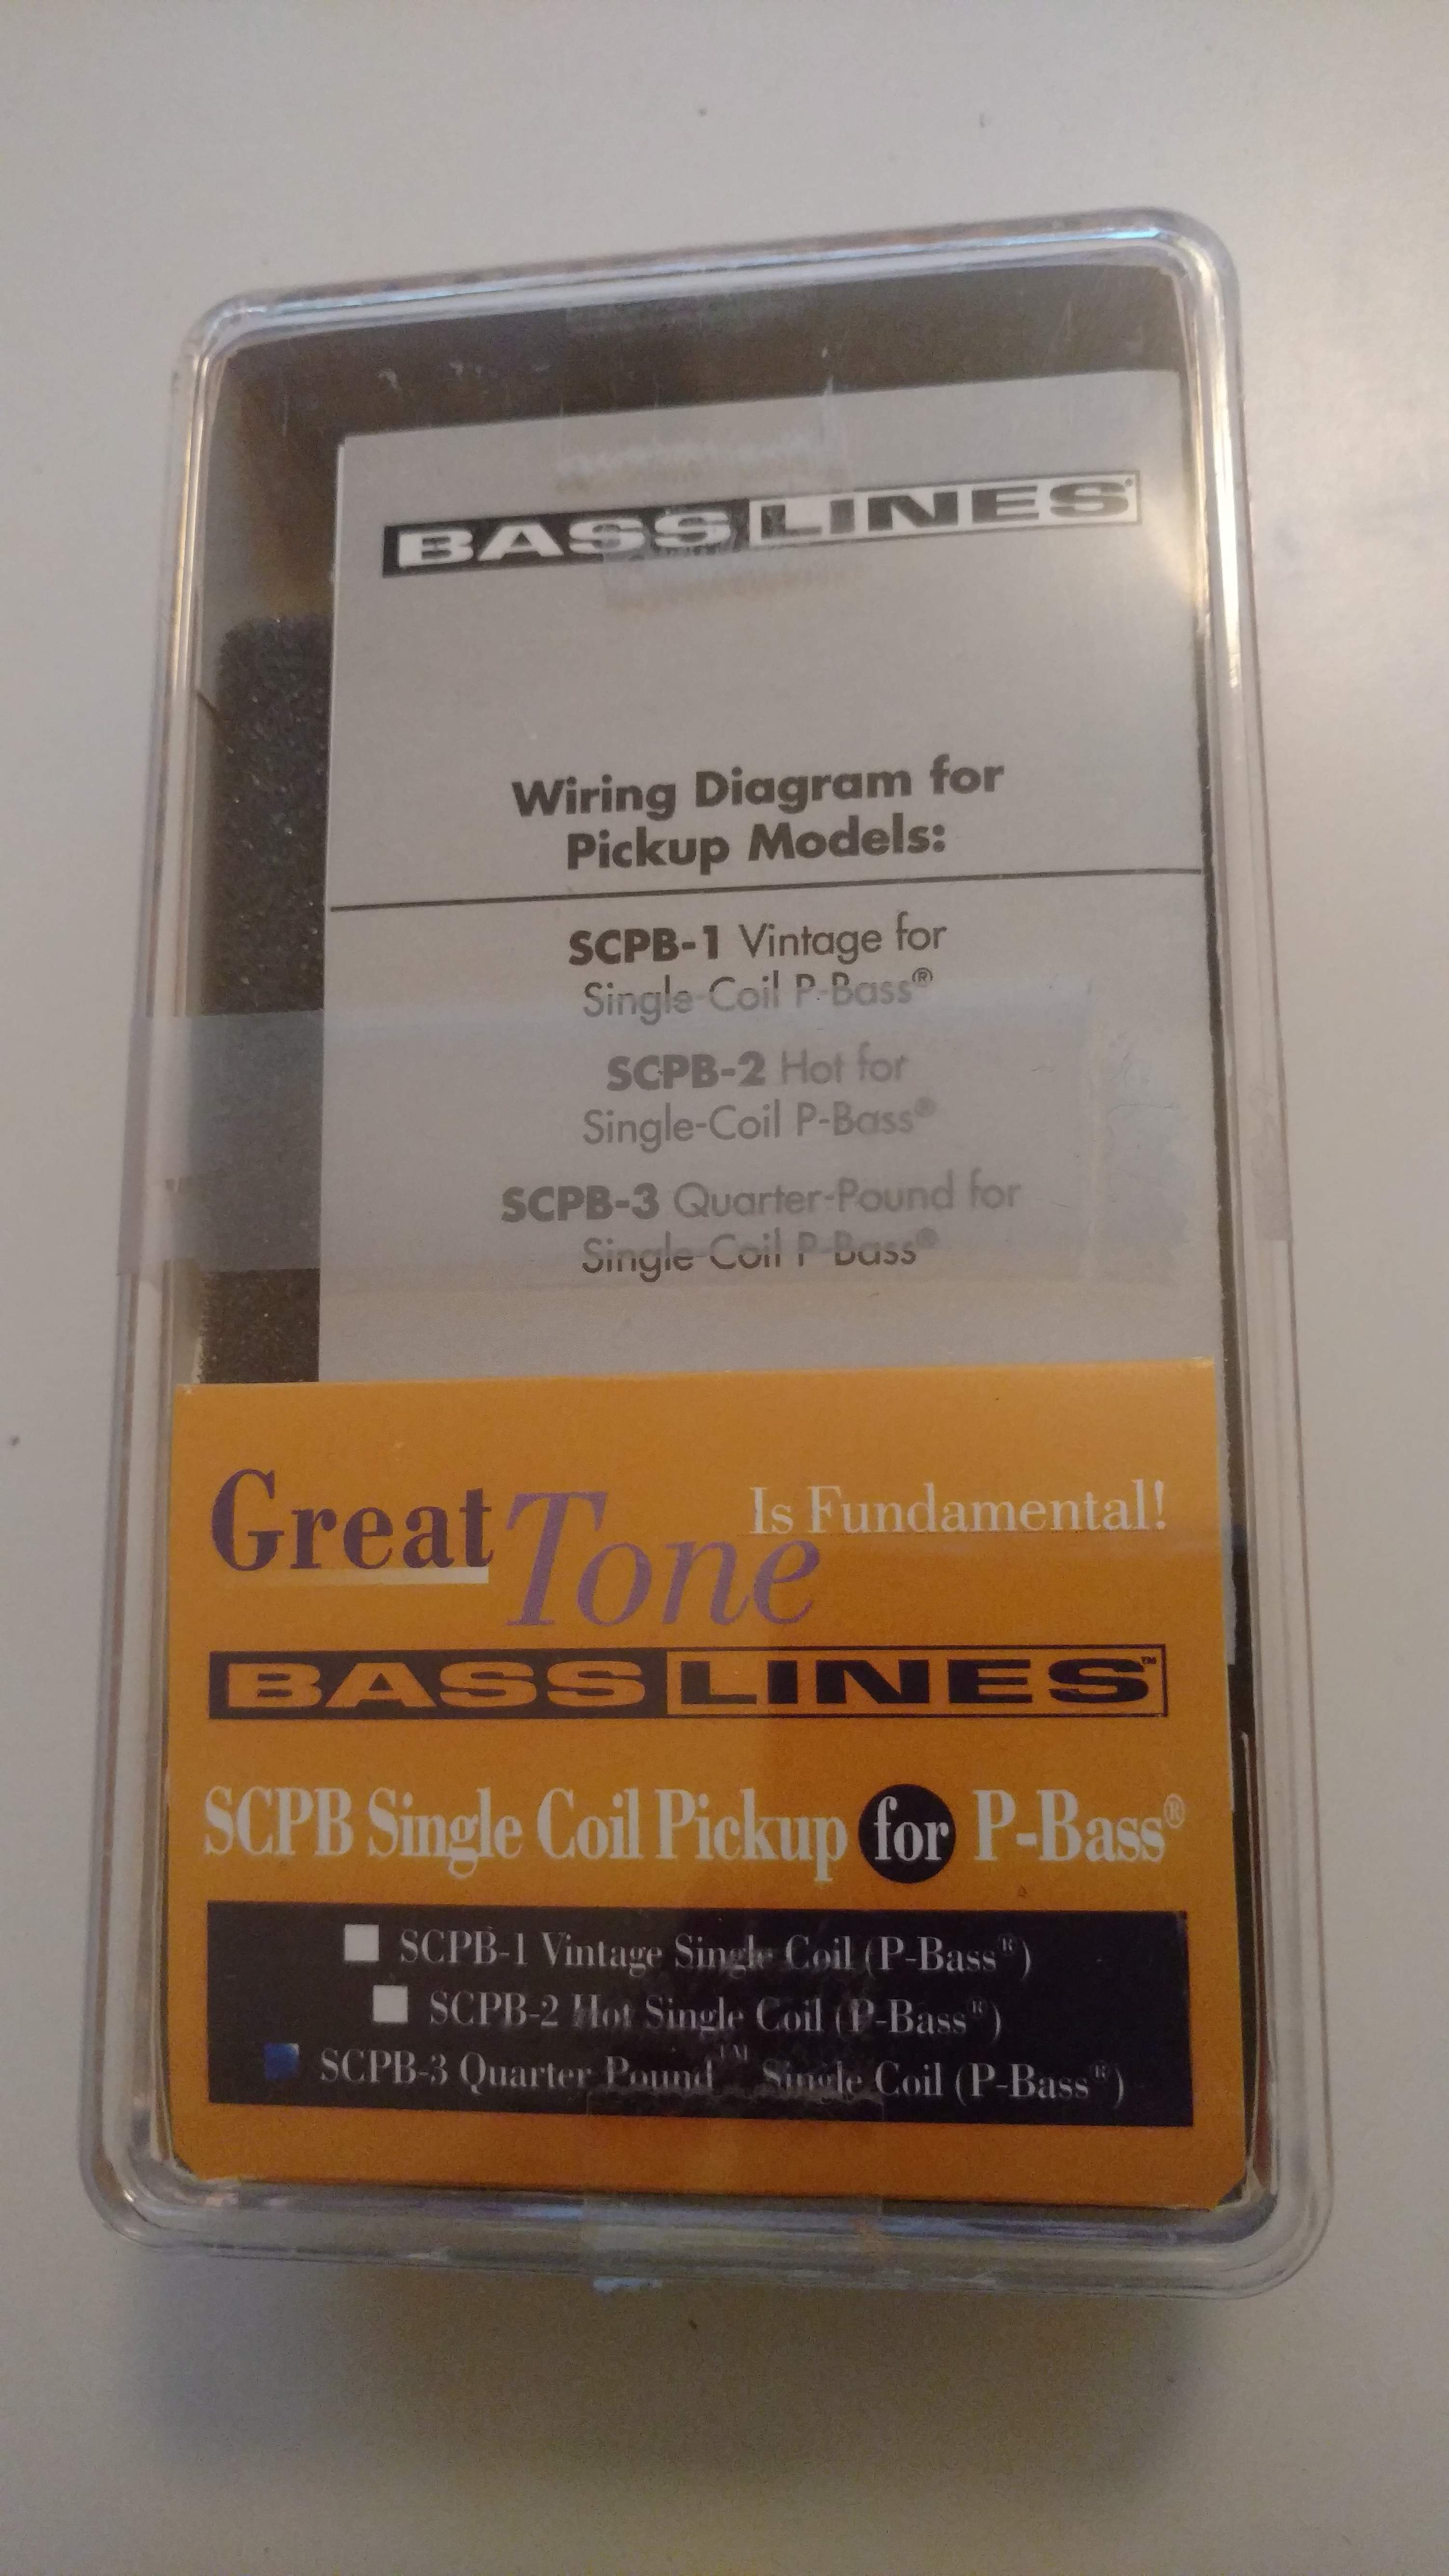 Sold Emg Bartolini Bass Lines Pickups And Preamps Single Coil Wiring Diagram Img 20160108 151023669